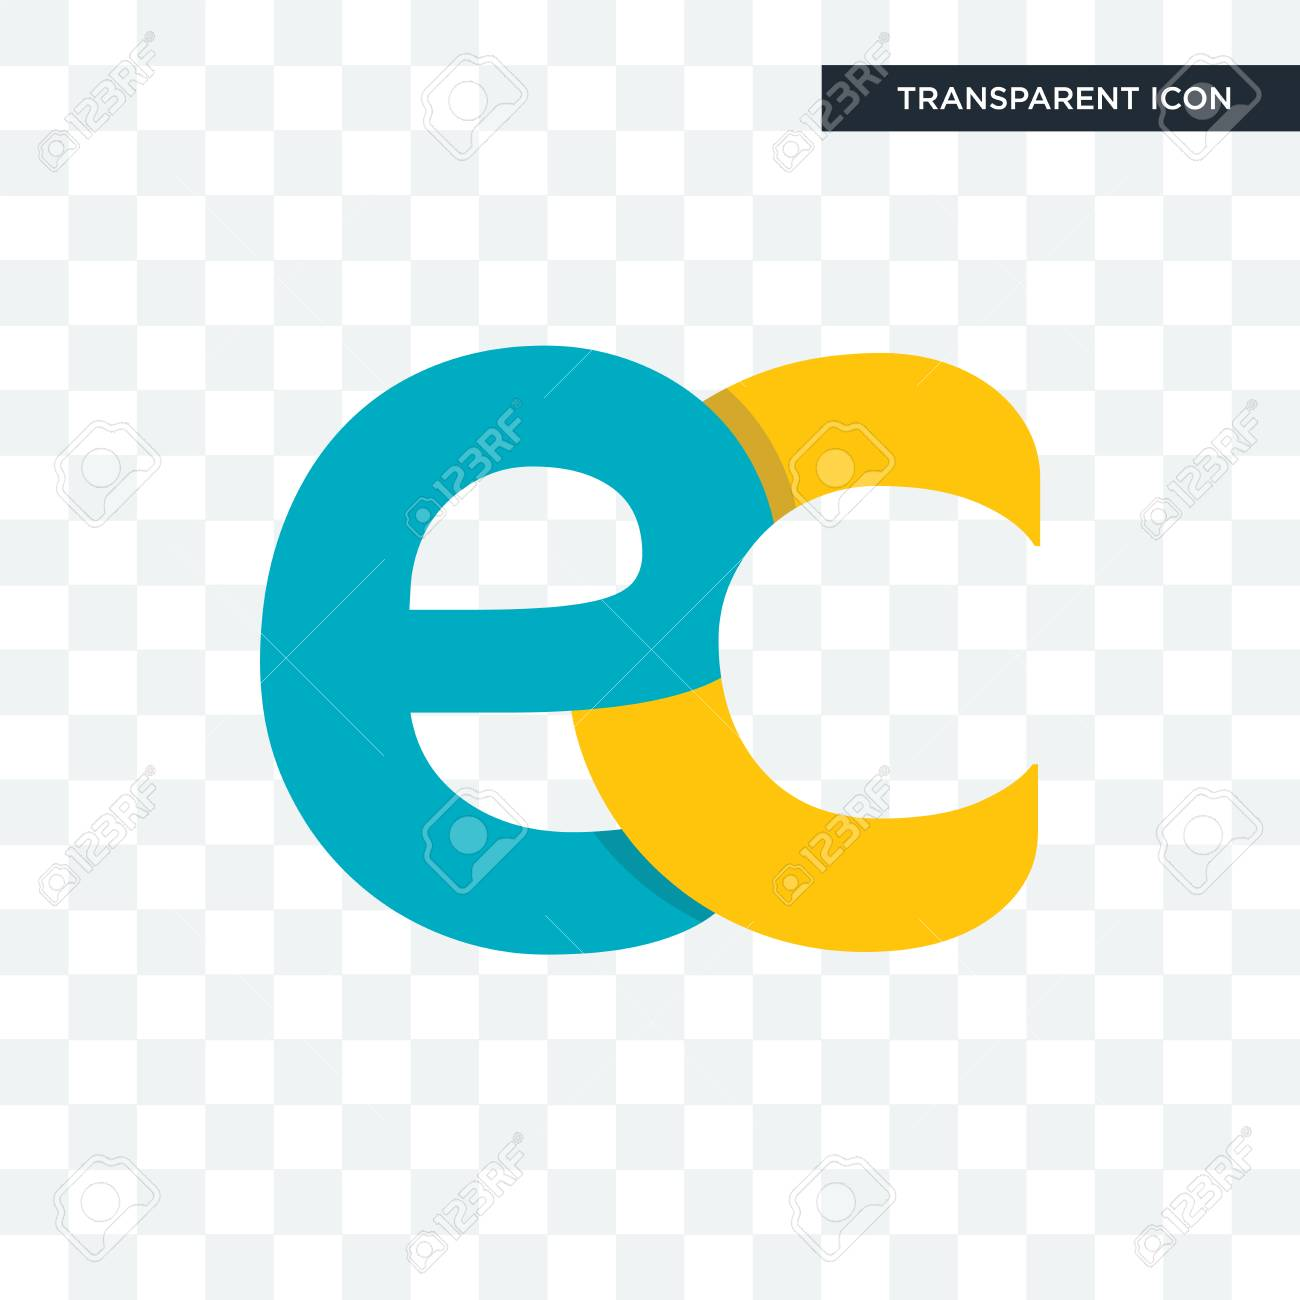 Ec Vector Icon Isolated On Transparent Background Ec Logo Concept 1300x1300